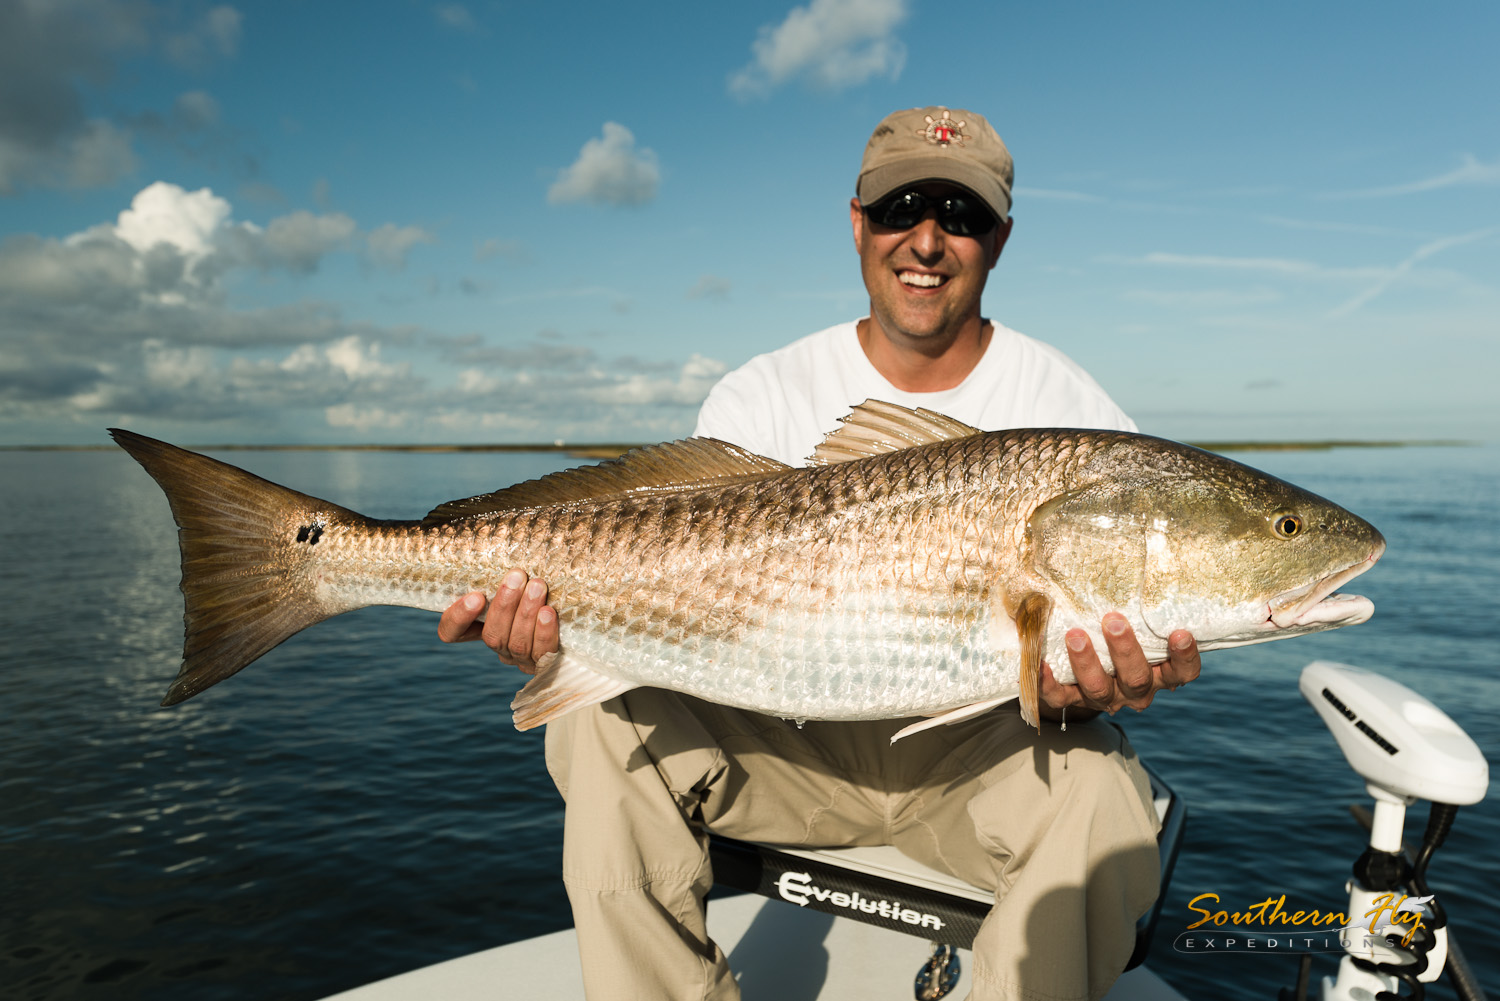 2019-07-19_SouthernFlyExpeditions_NewOrleans_JohnLaMorte-1.jpg